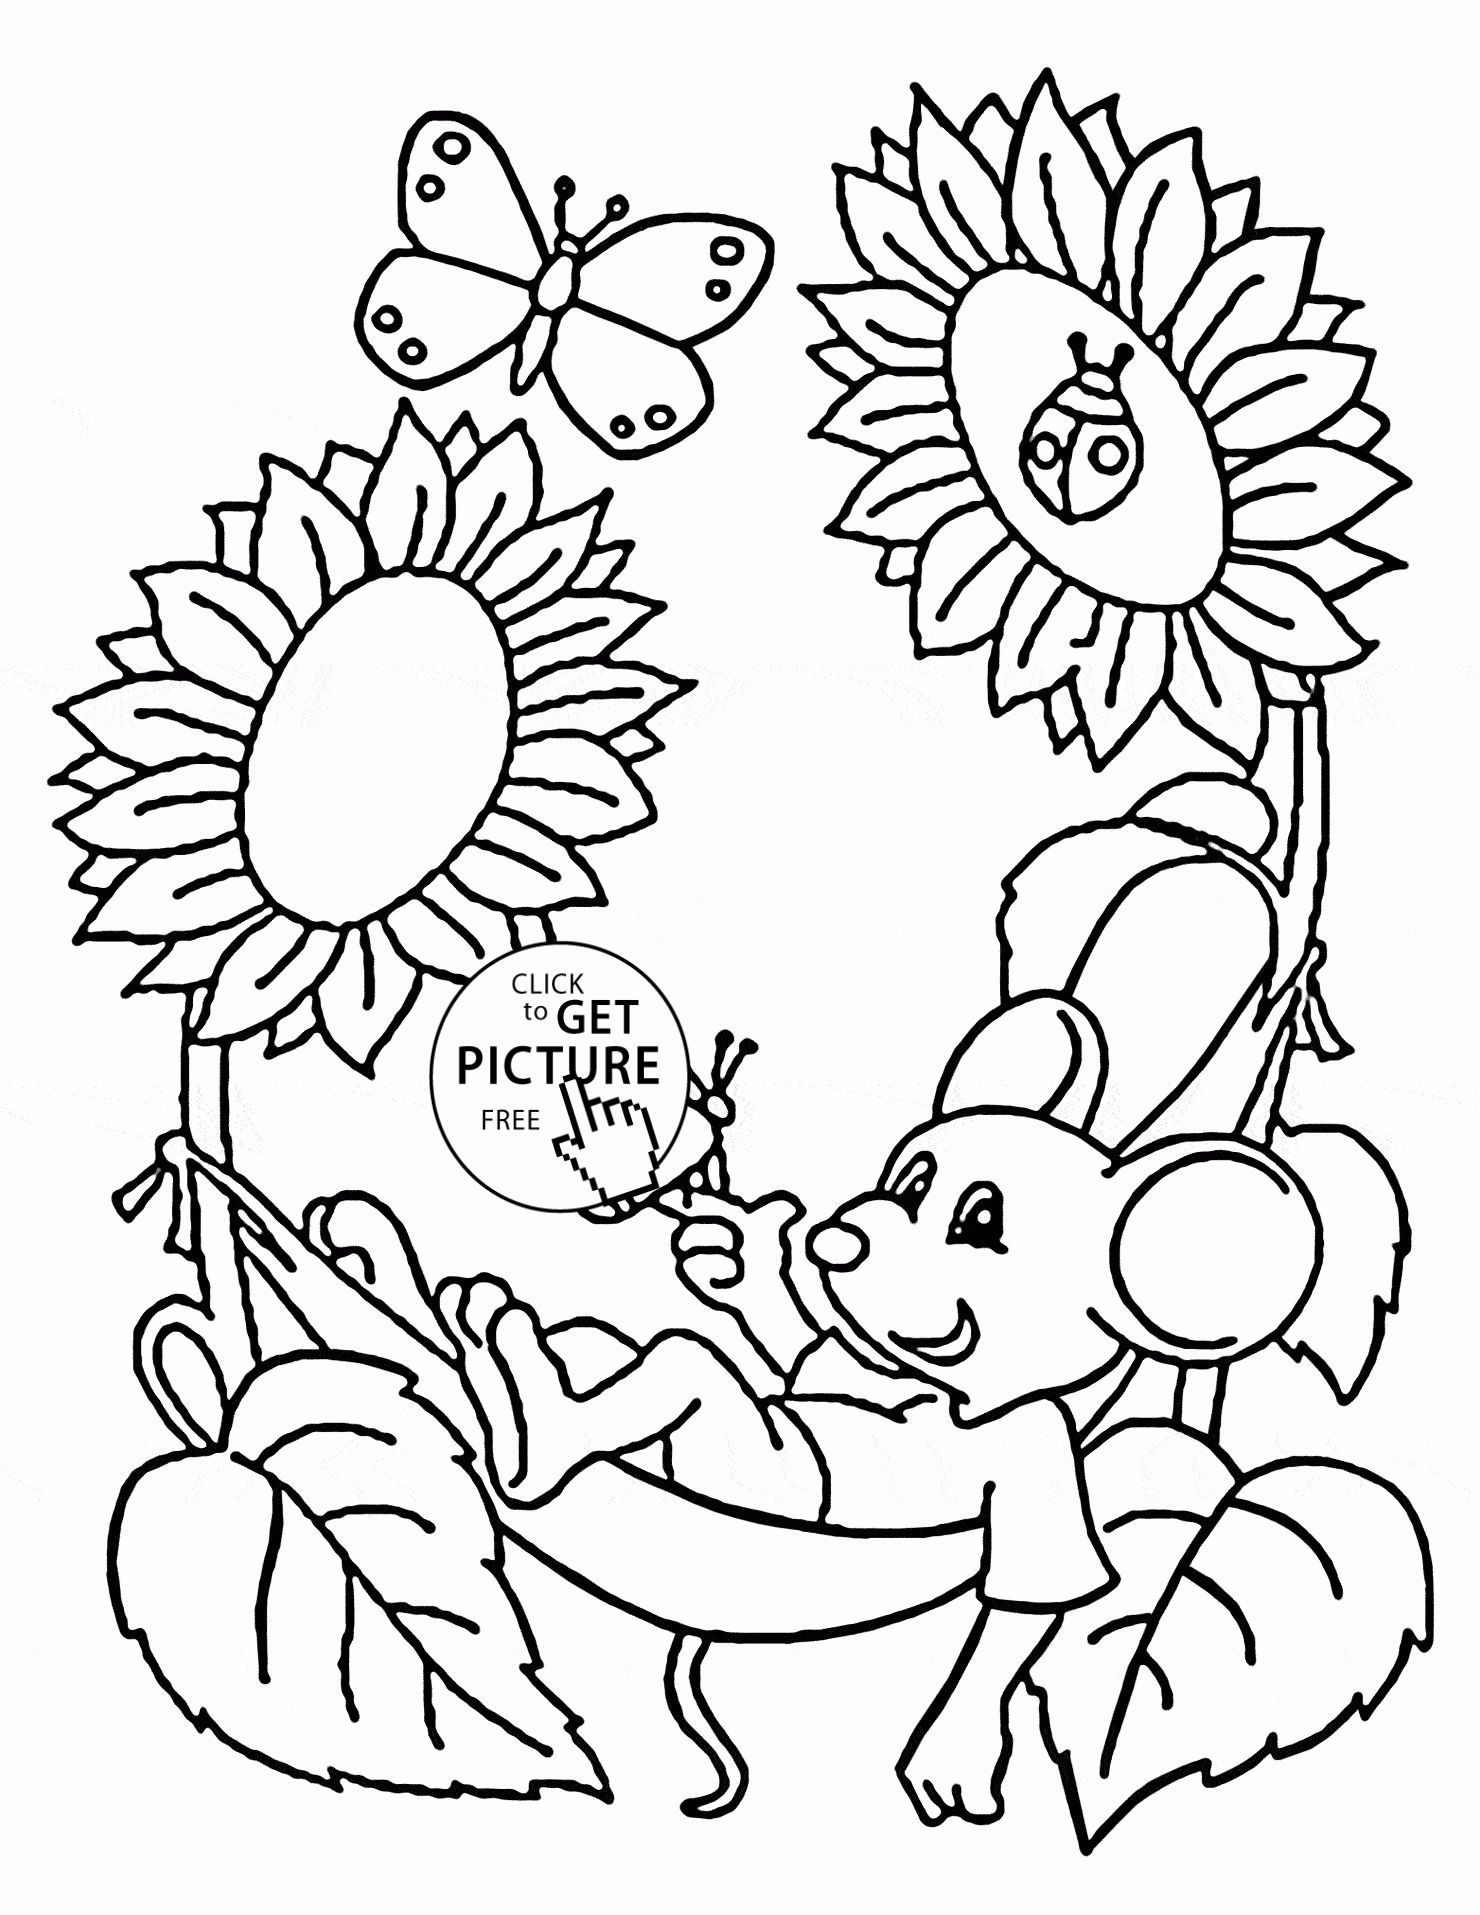 Spring Coloring Pages To Print In 2020 Spring Coloring Sheets Veterans Day Coloring Page Summer Coloring Pages